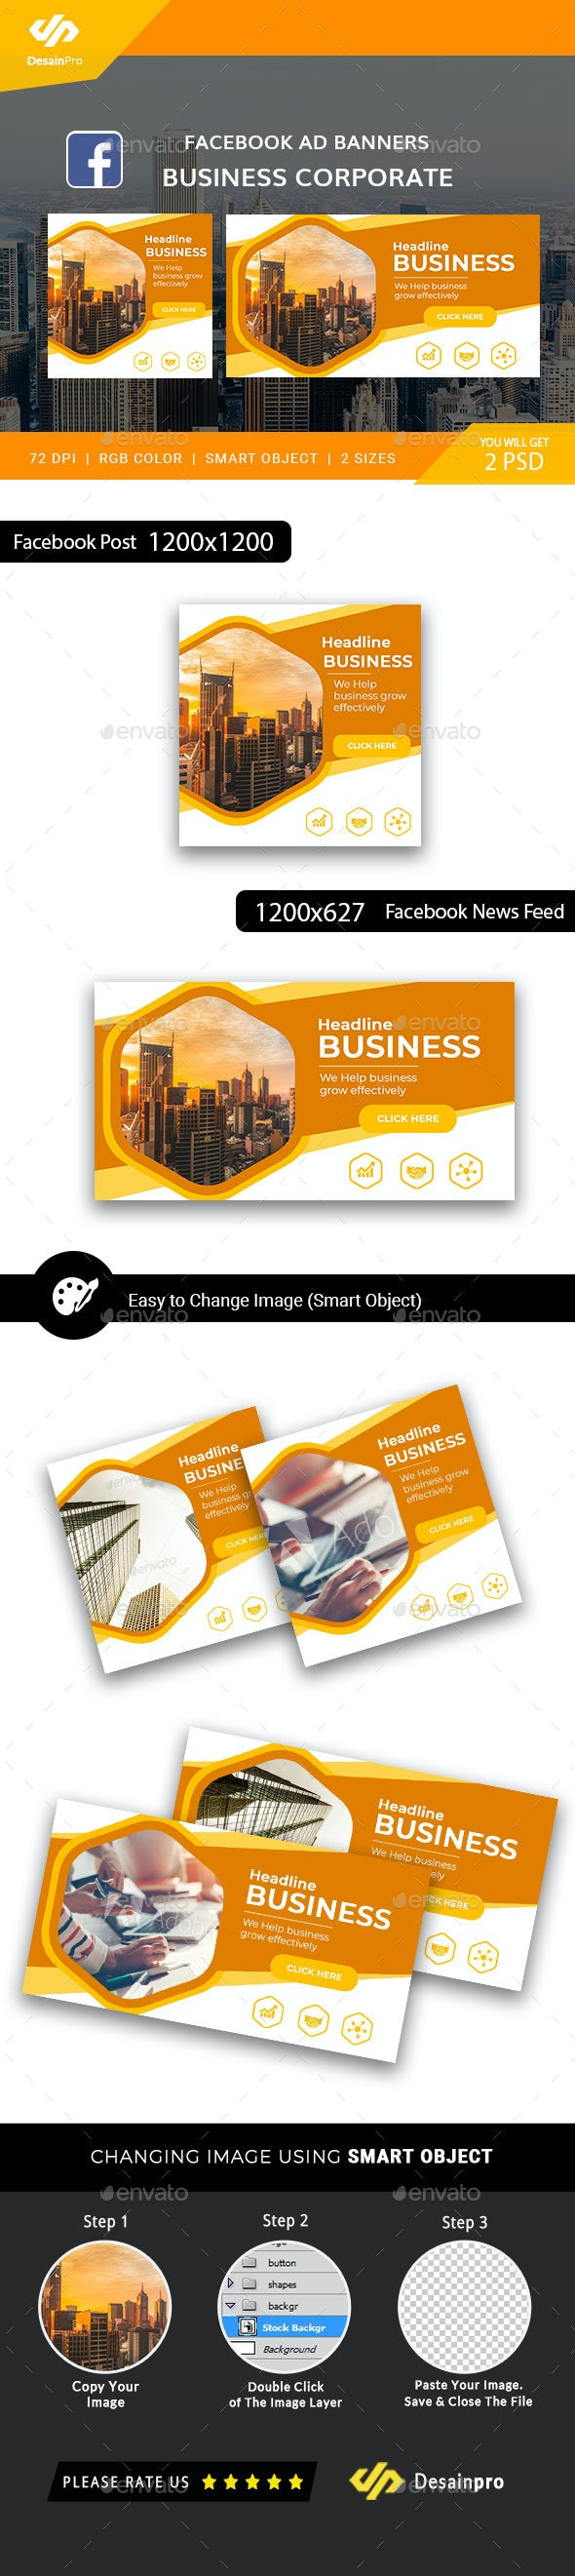 Business Corporate Facebook Ad Banners - AR - Social Media Web Elements